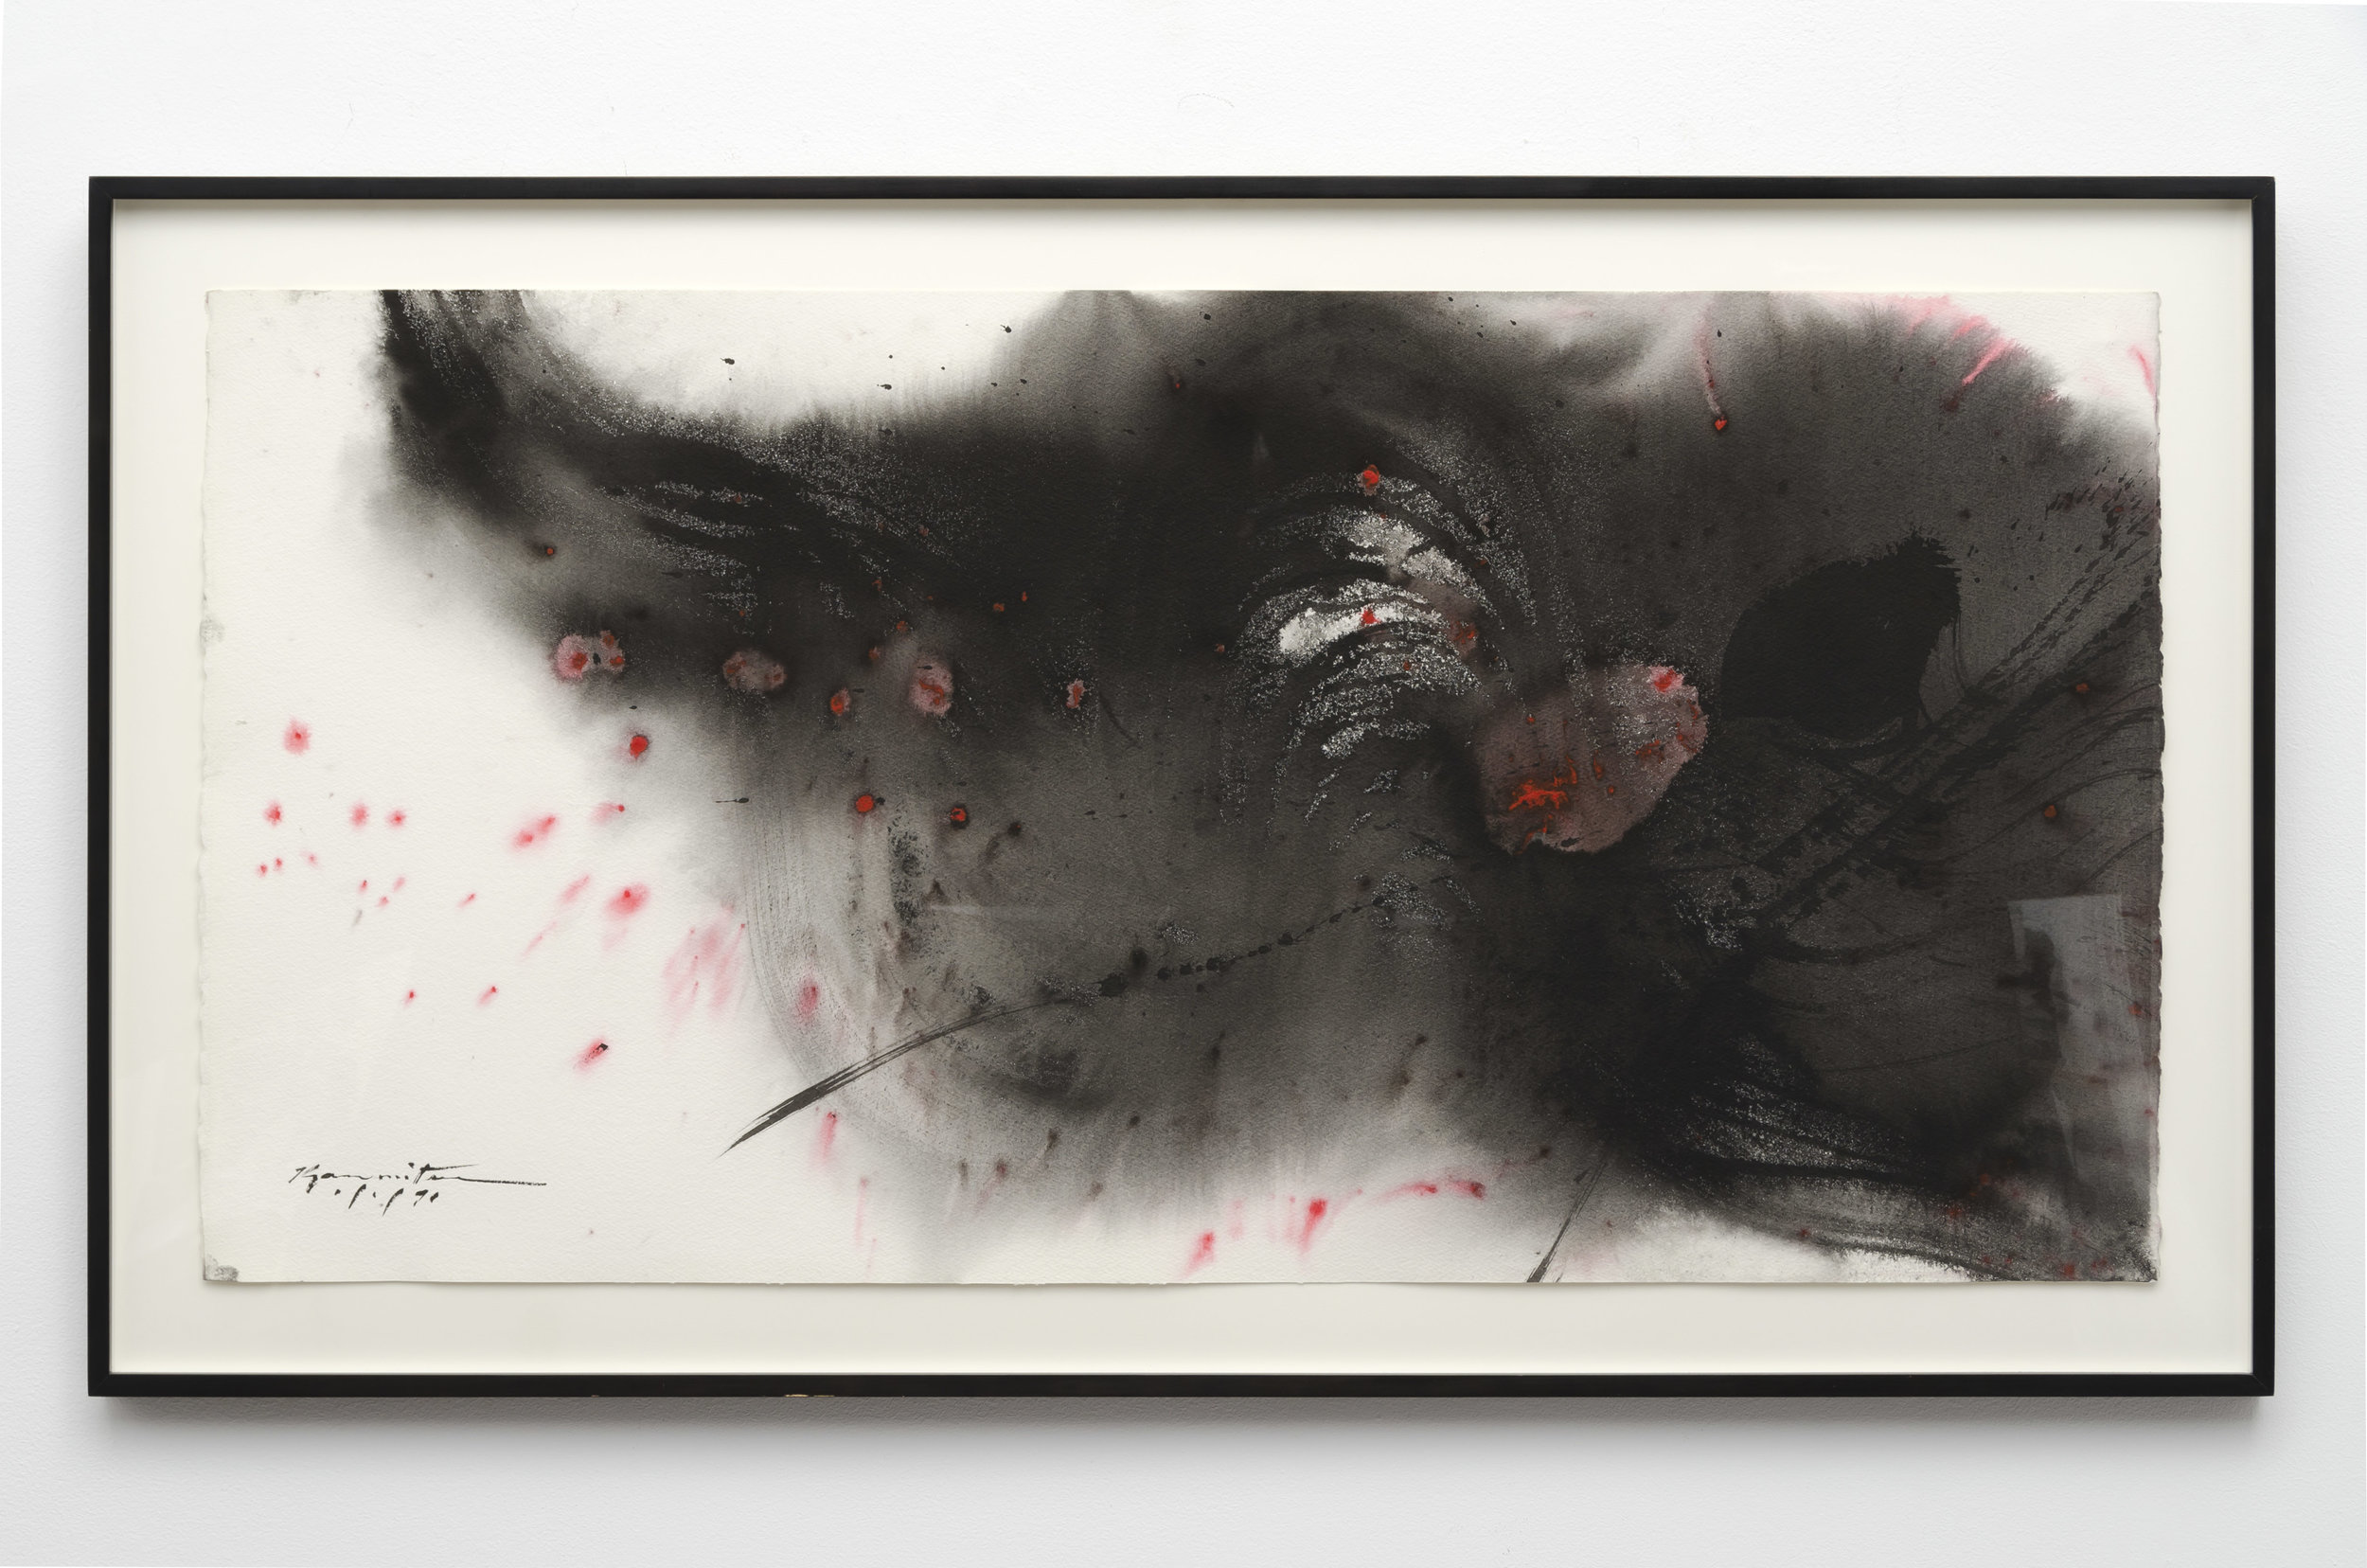 1-91   1991  sumi on paper  25 3/8 x 45 inches, 64.5 x 114.3 centimeters